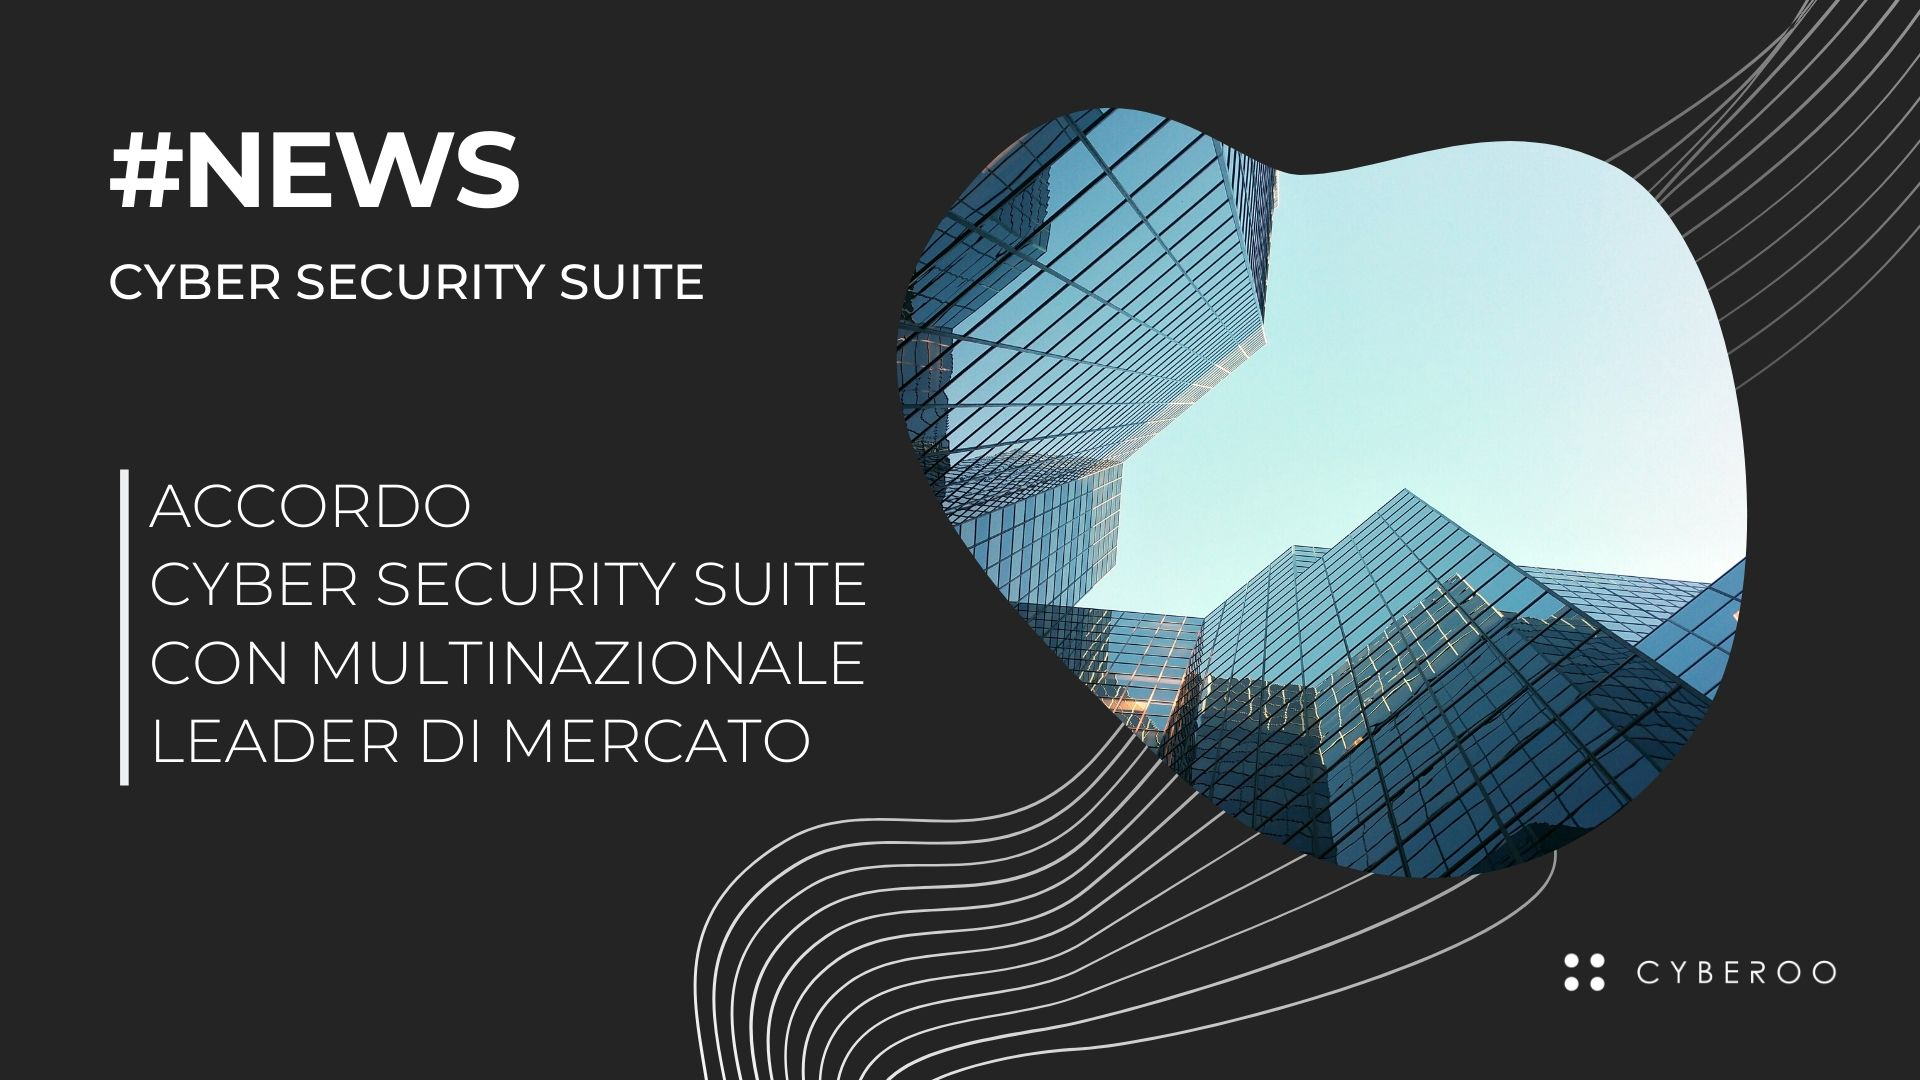 Cyber Security Suite - Multinazionale Leader